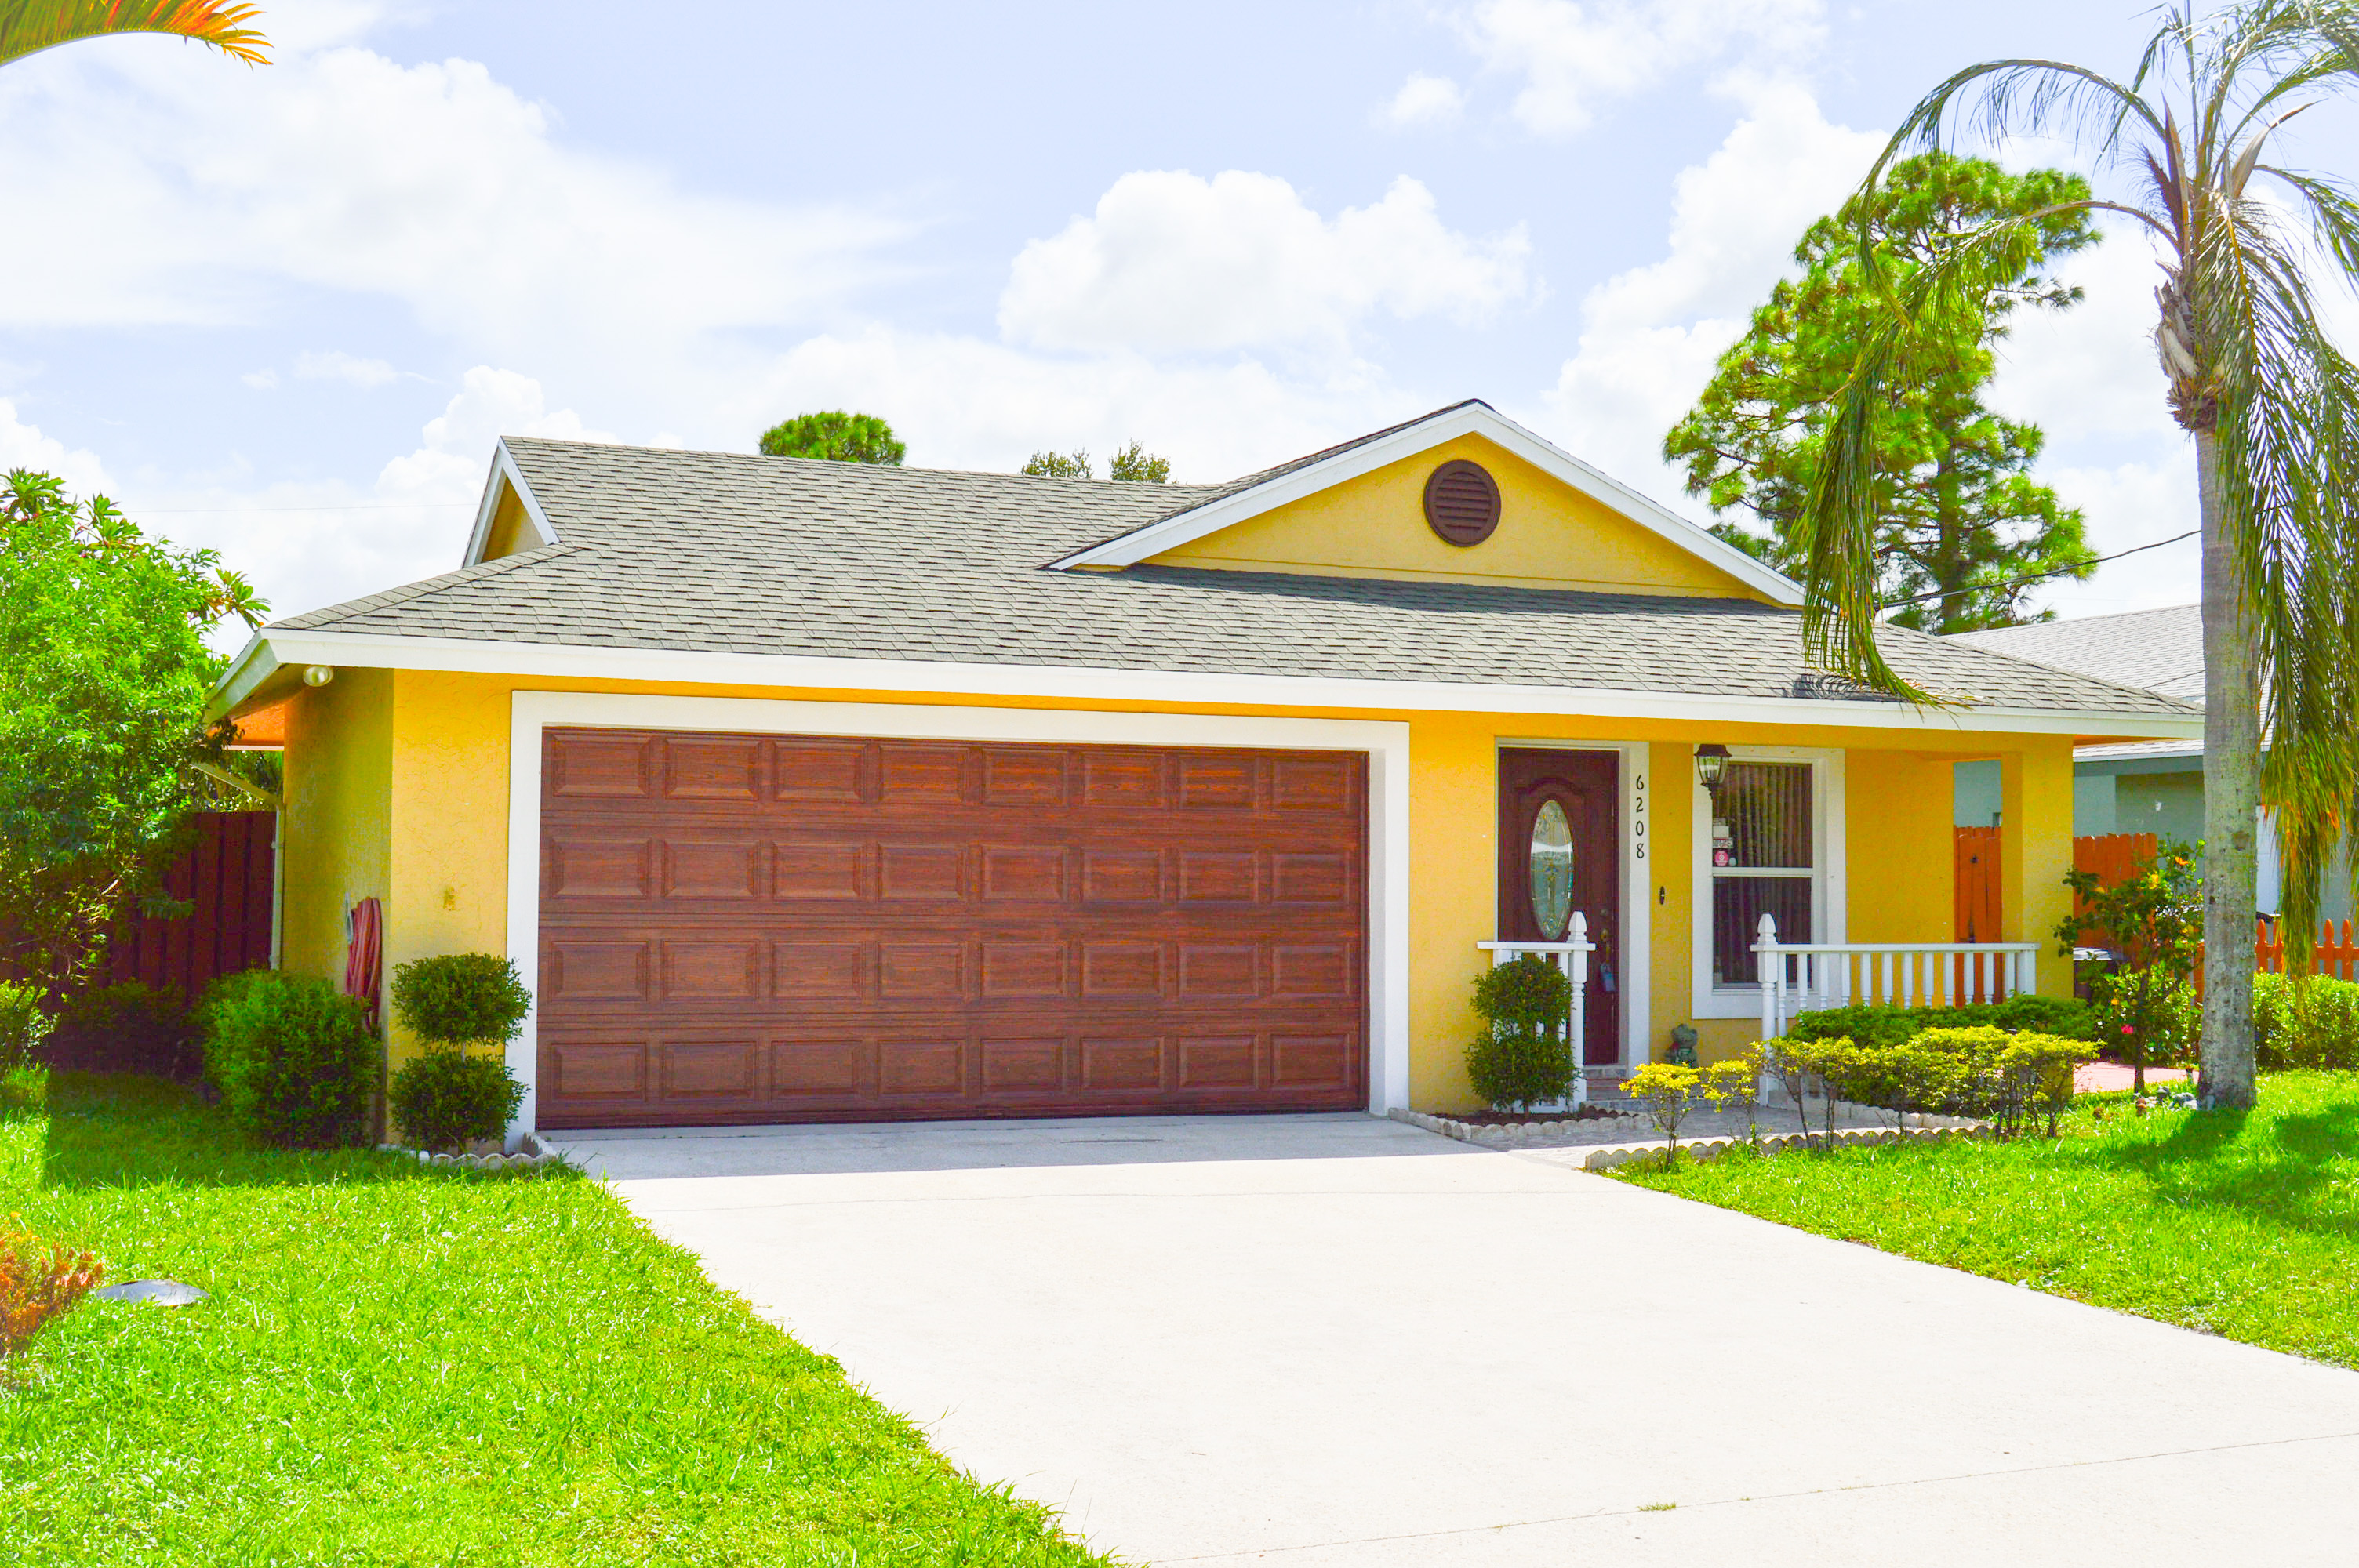 Riviera Beach Homes For Sale community image